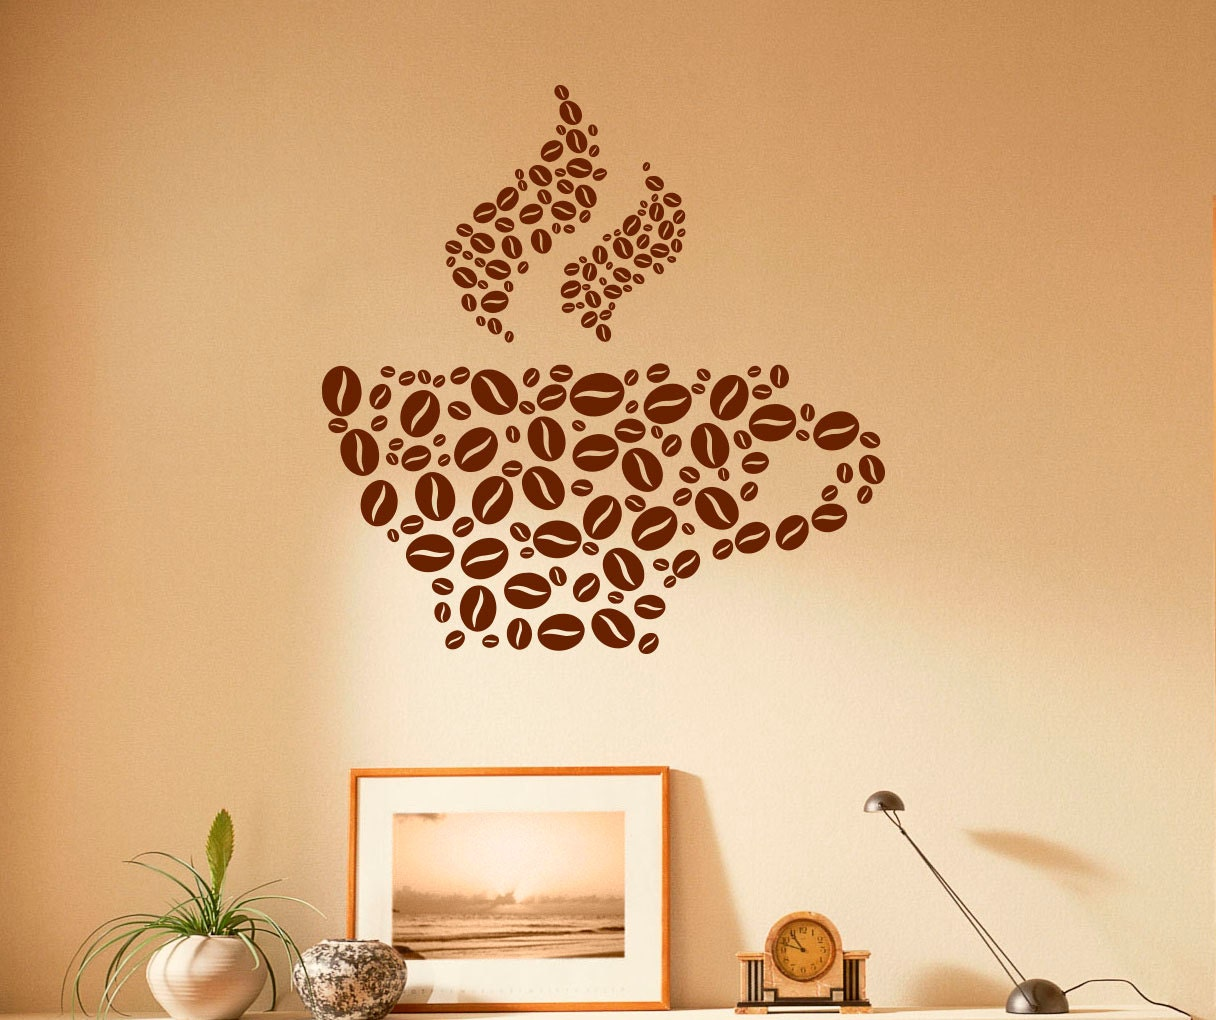 Coffee Cup Wall Decal Coffee Beans Vinyl Stickers Cafe